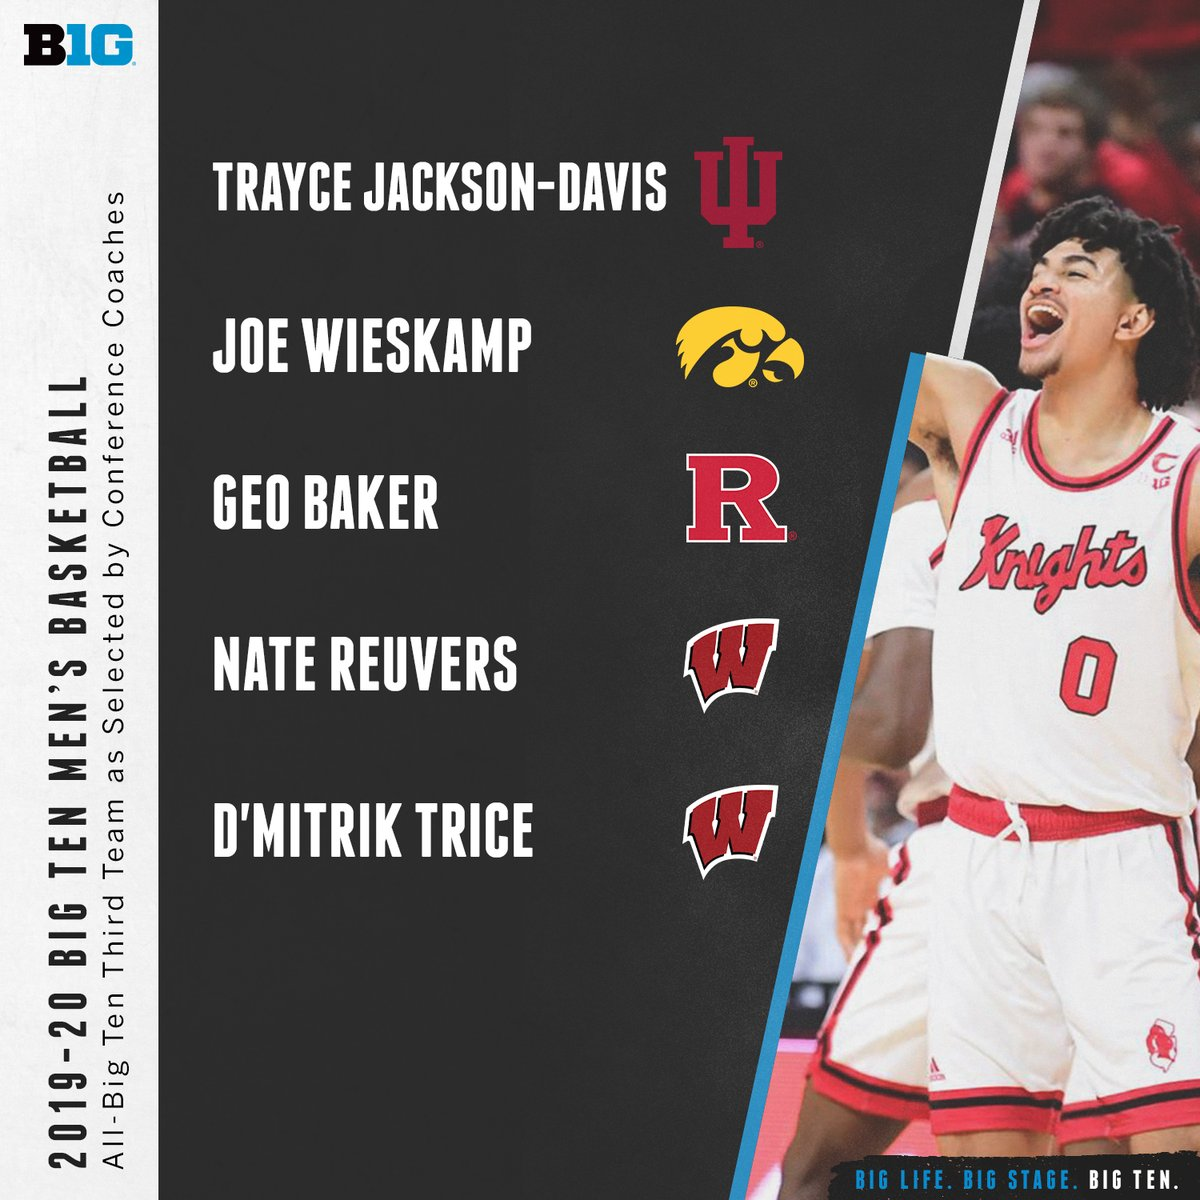 The 2019-20 Big Ten Men's Basketball All-Big Ten Third Team as selected by conference coaches and media. #B1GMBBall